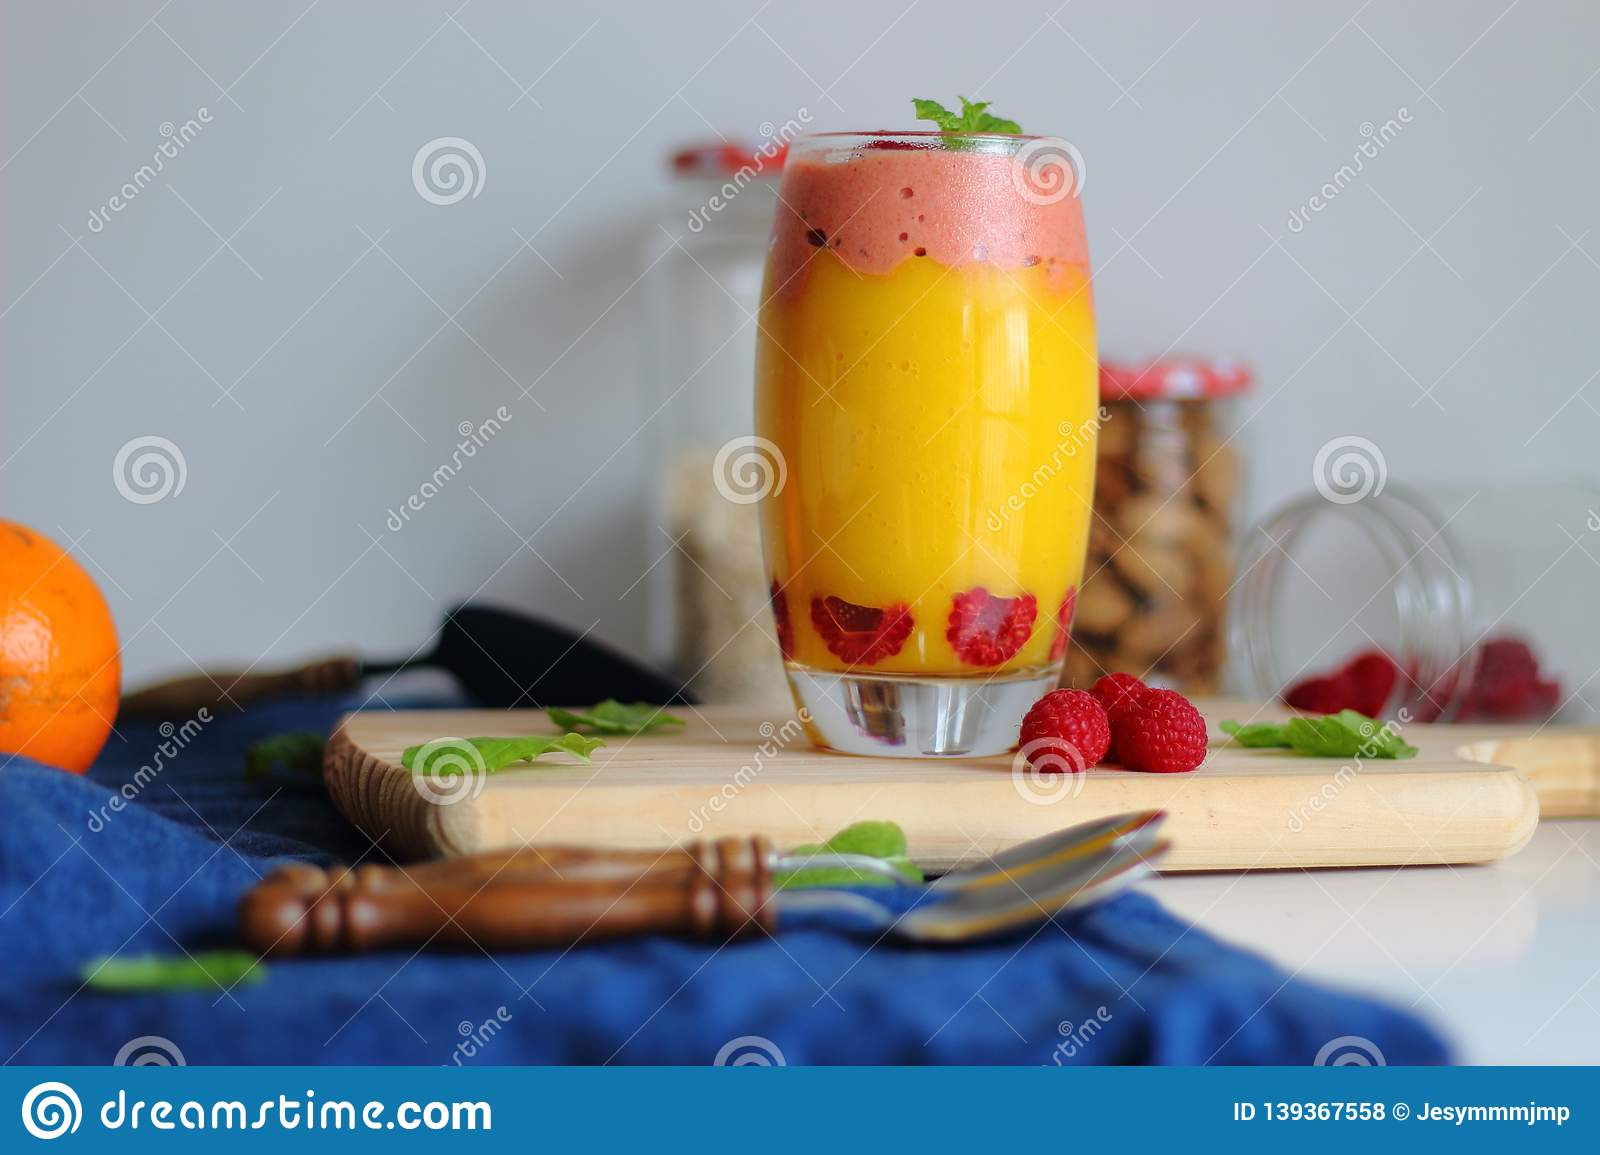 Fresh vegan layered dessert in a glass of colored smoothies of mango and orange with raspberries ice cream.